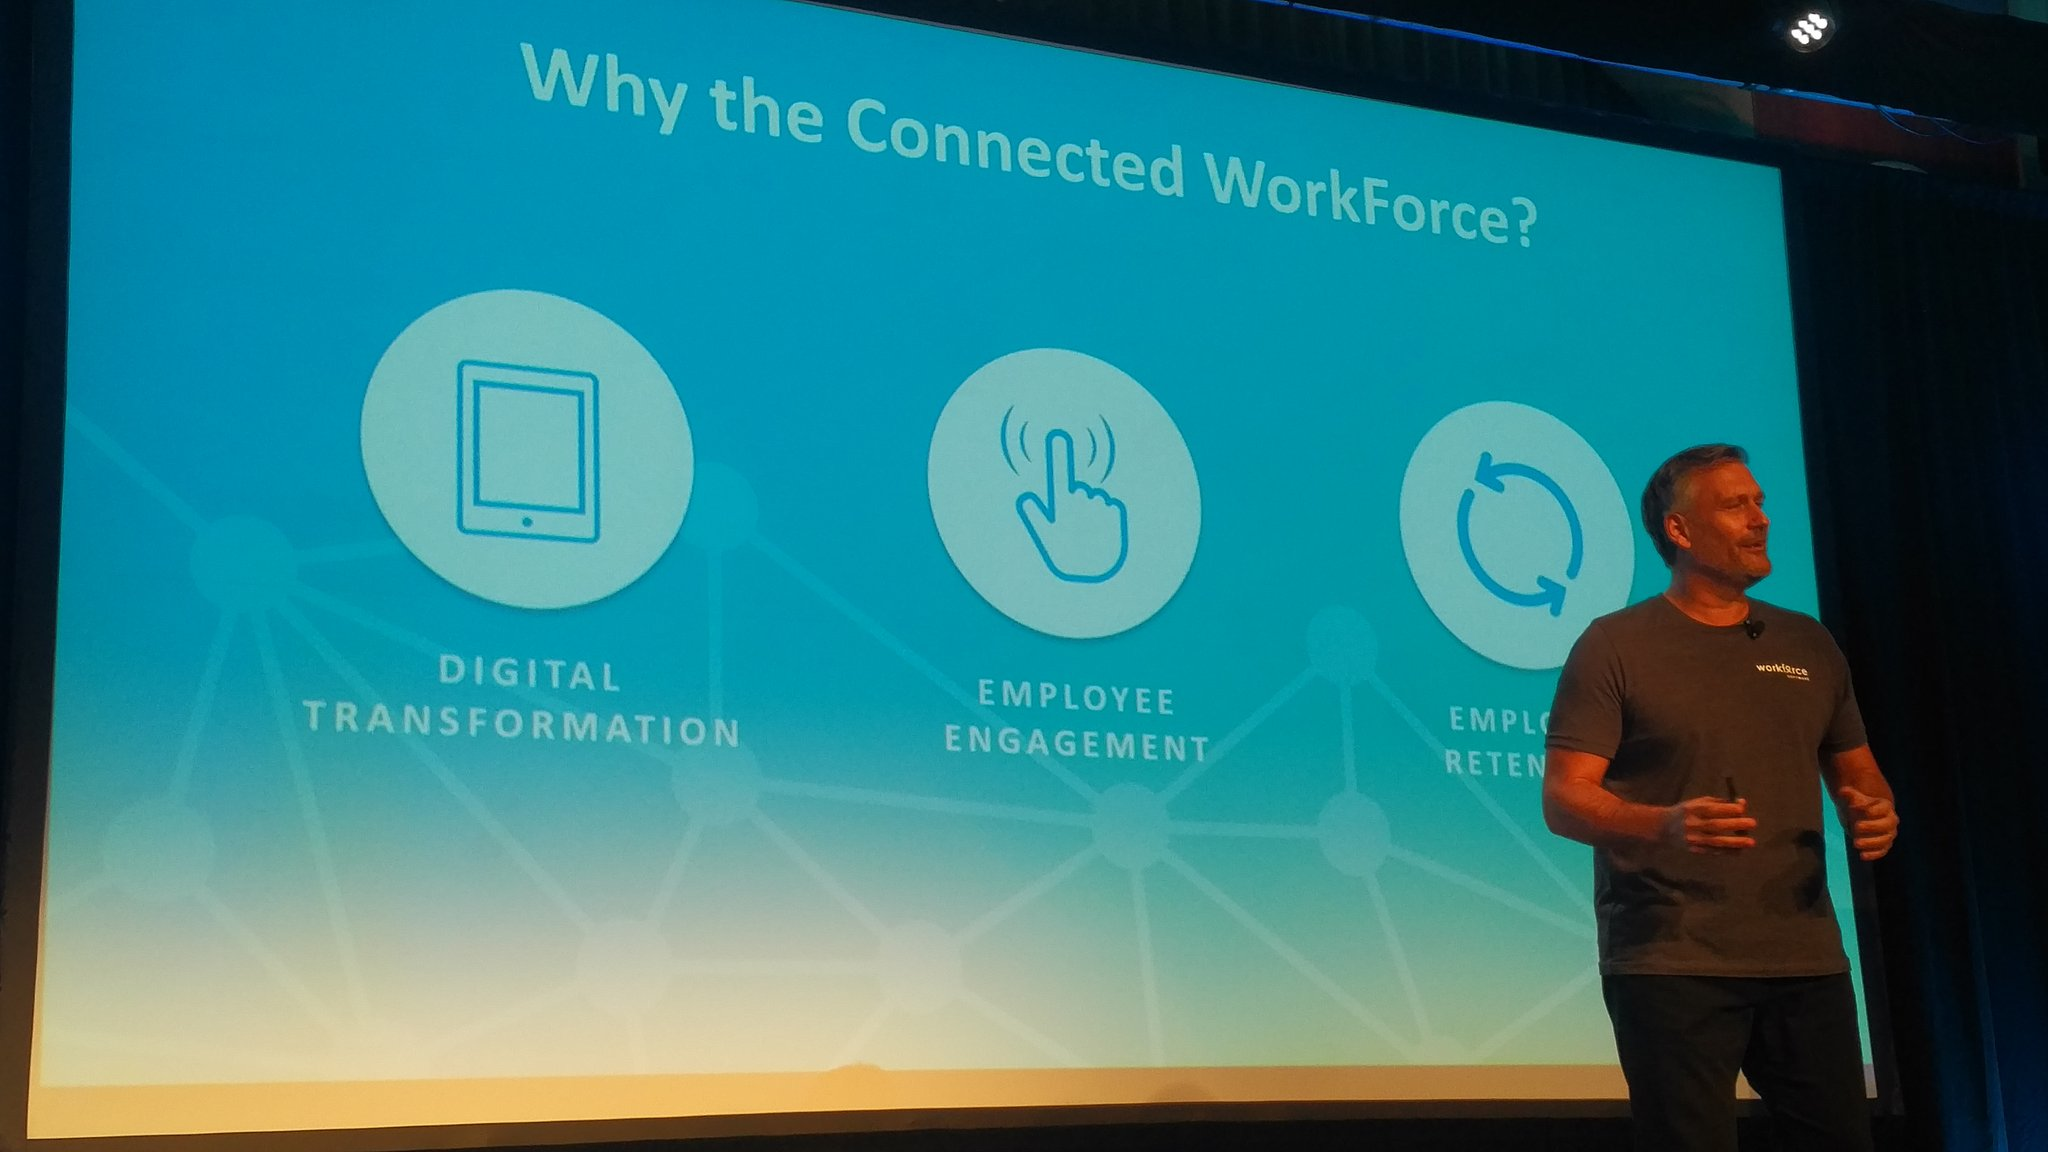 .@mikemorini77 the connected workforce enables  - #Digitaltransformation  - employee #engagement  - employee #retention  #wfsvision17 https://t.co/7LQYsLtVLU